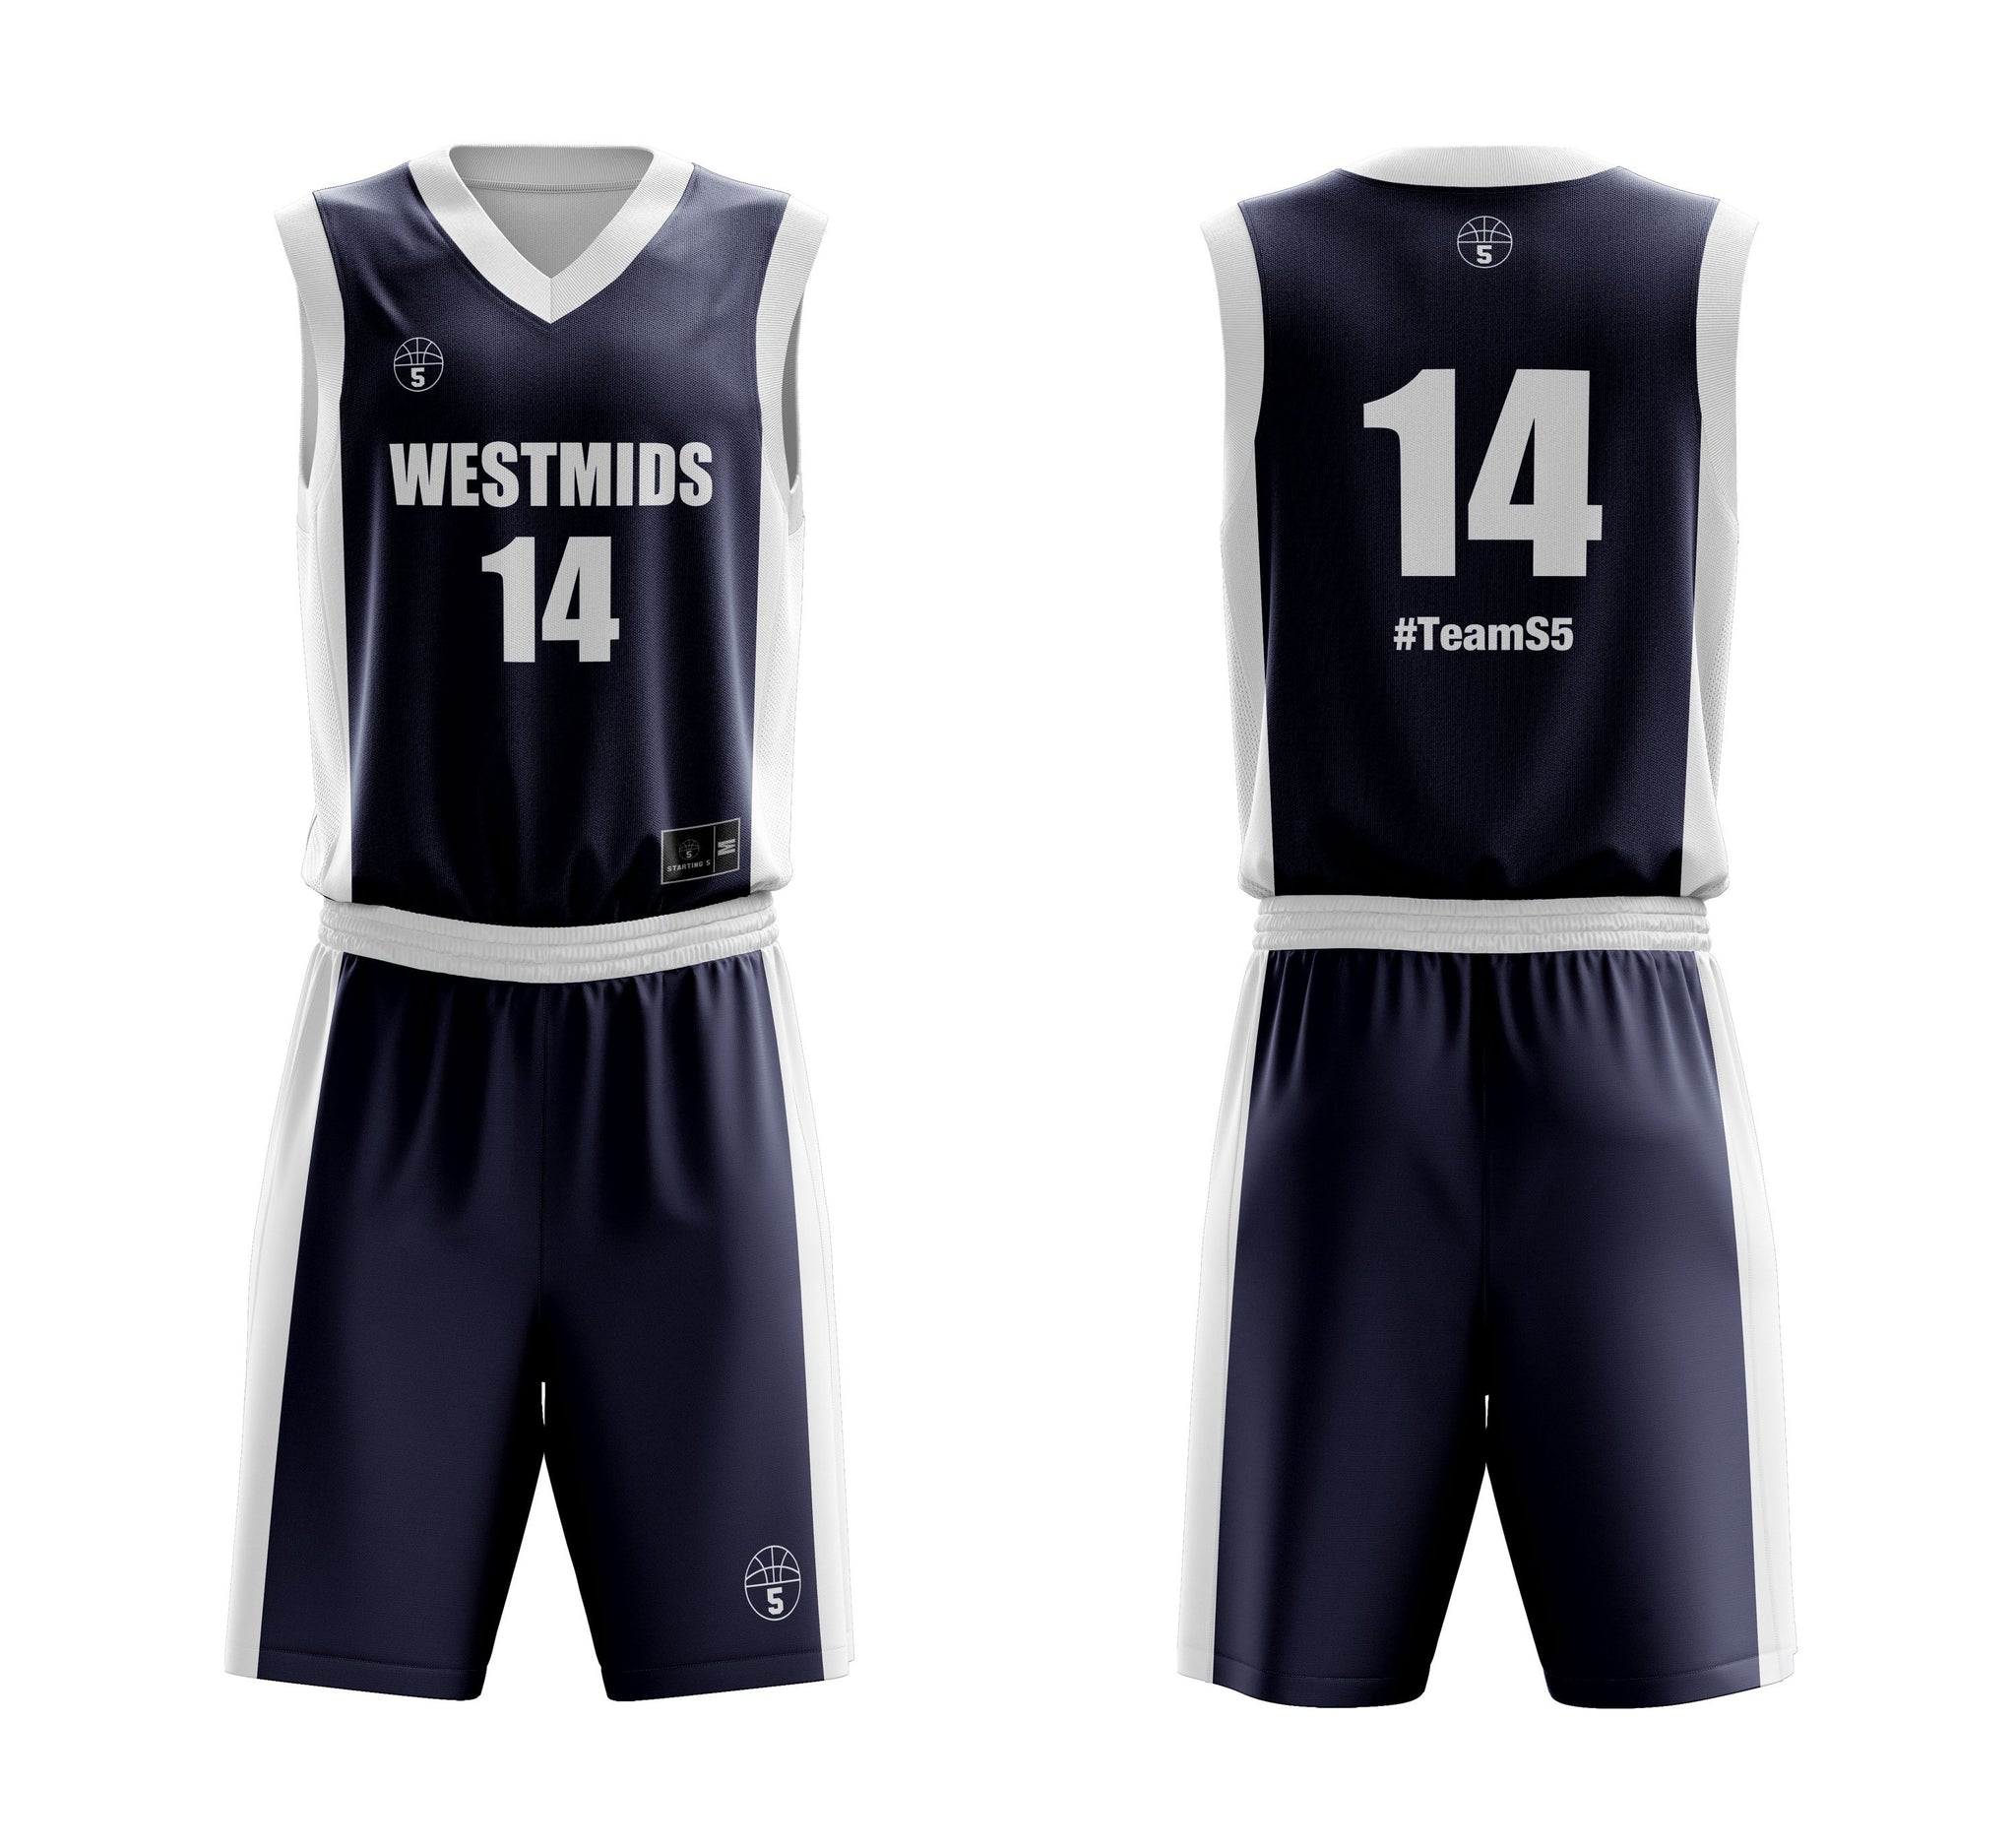 STARTING 5 Sublimated Reversible Basketball Kit - Example 7